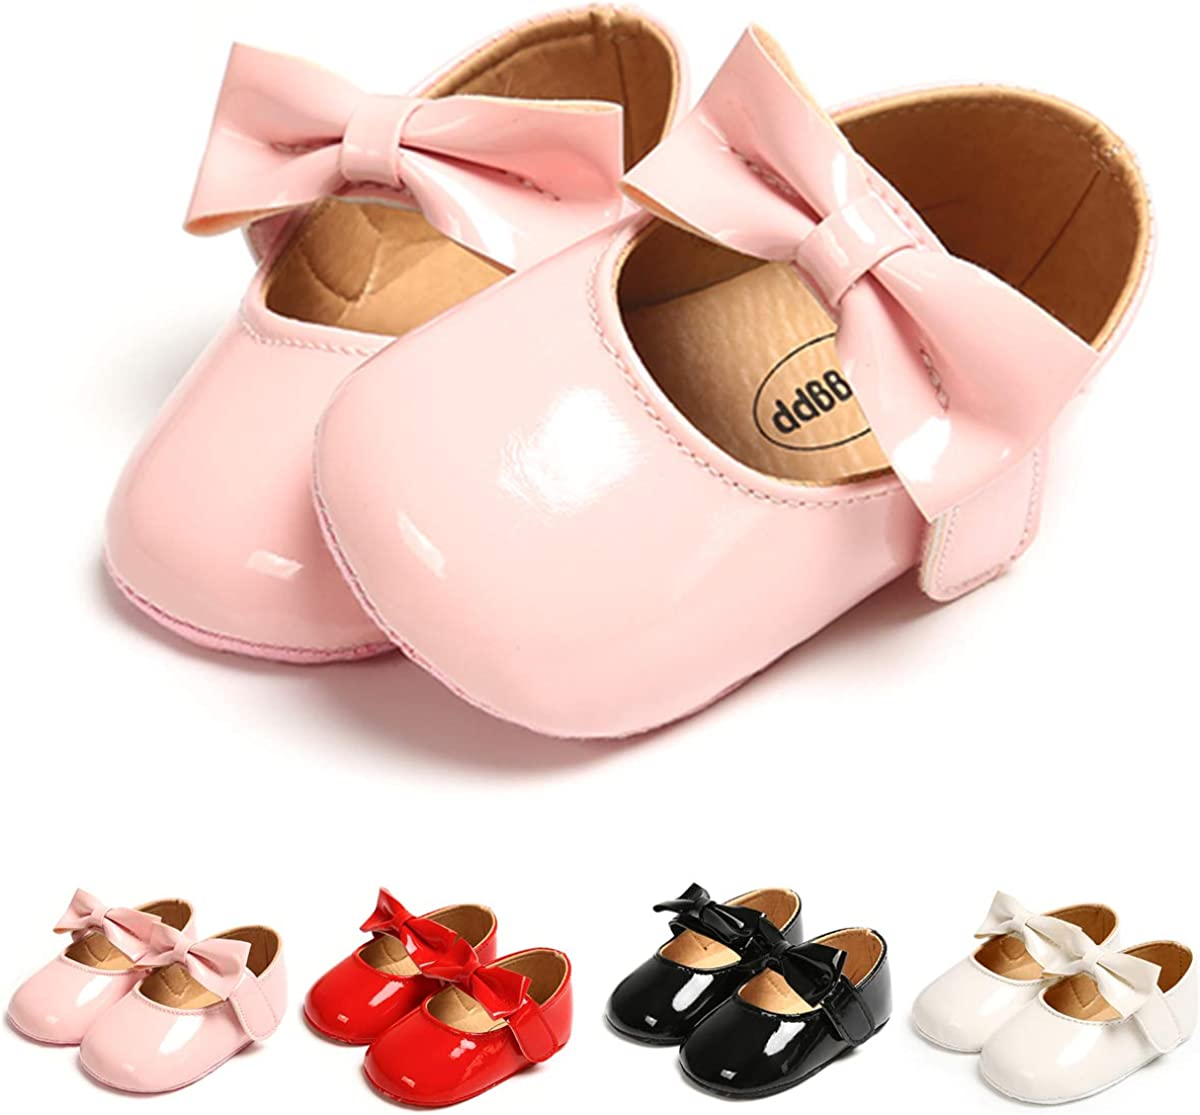 Babies and Toddlers Tuoting Infant Baby Girl Shoes,Baby Mary Jane Flats Princess Dress Shoes,Crib Shoe for Newborns Infants